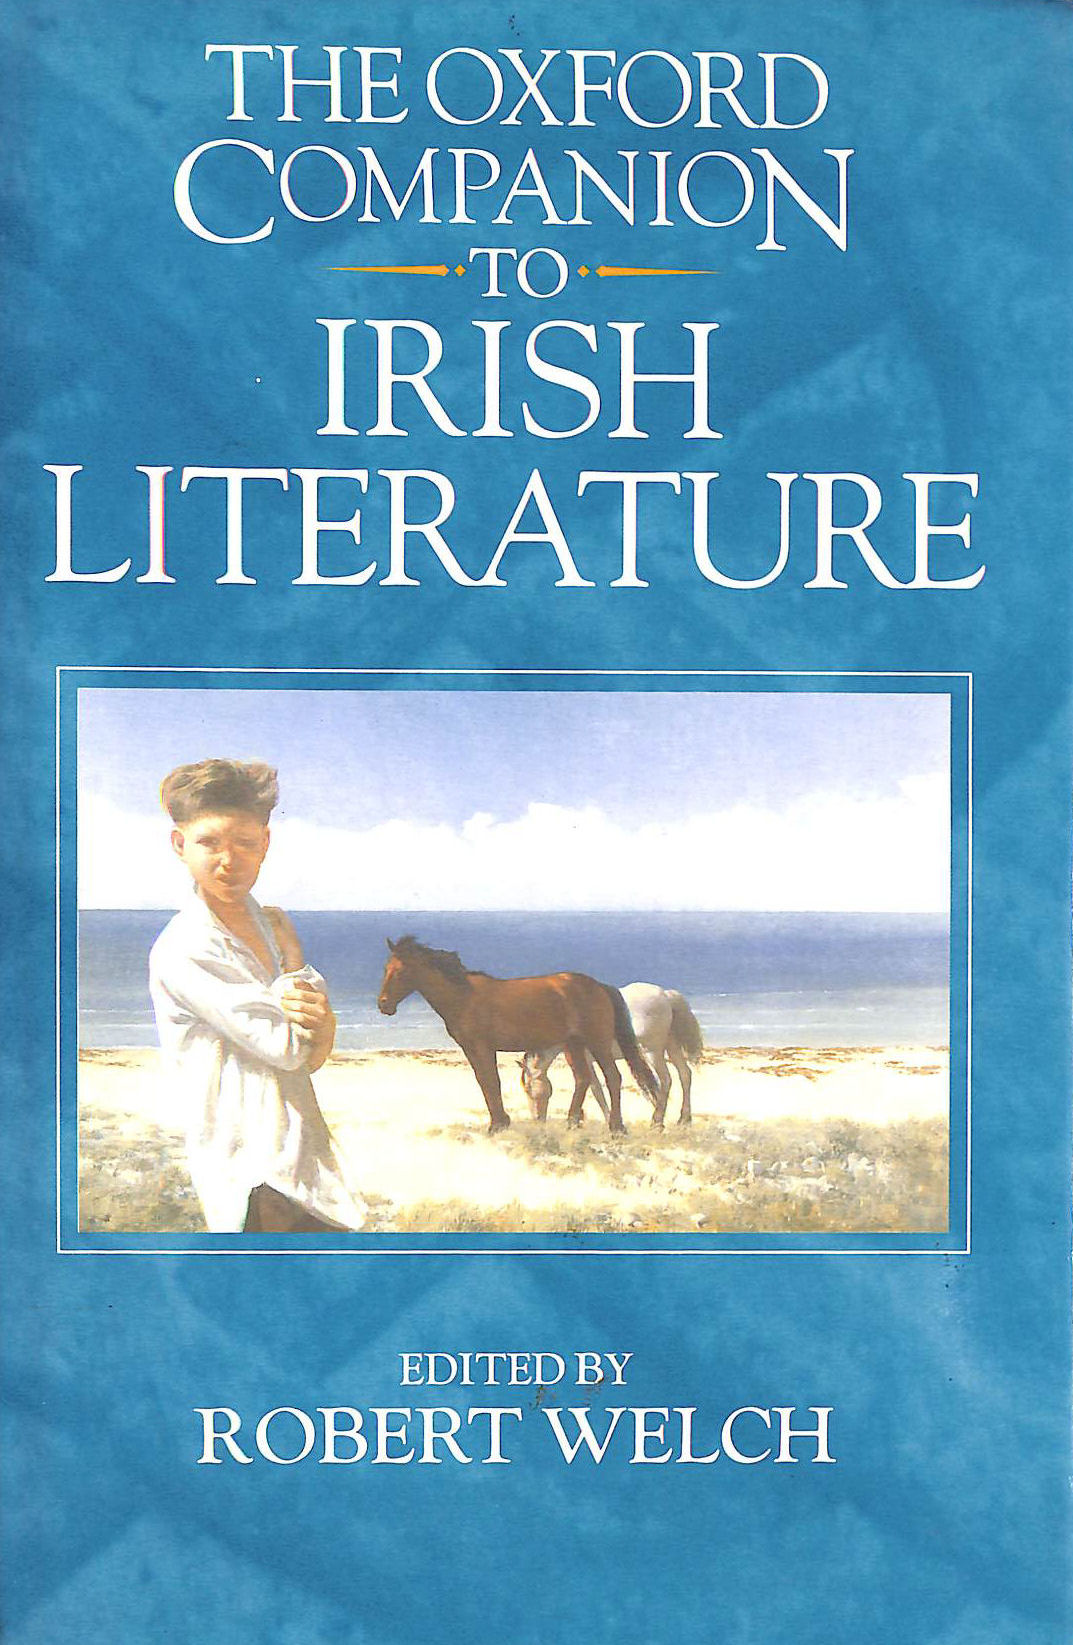 Image for The Oxford Companion to Irish Literature